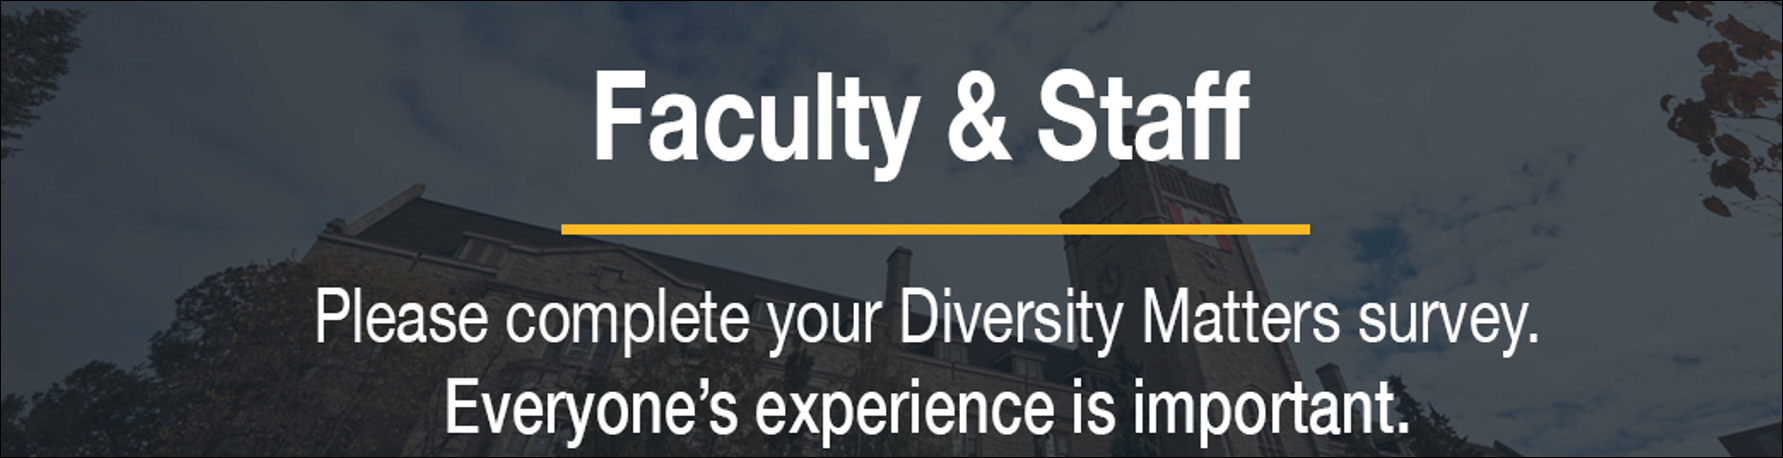 Text requesting staff and faculty to complete Diversity Matters Survey